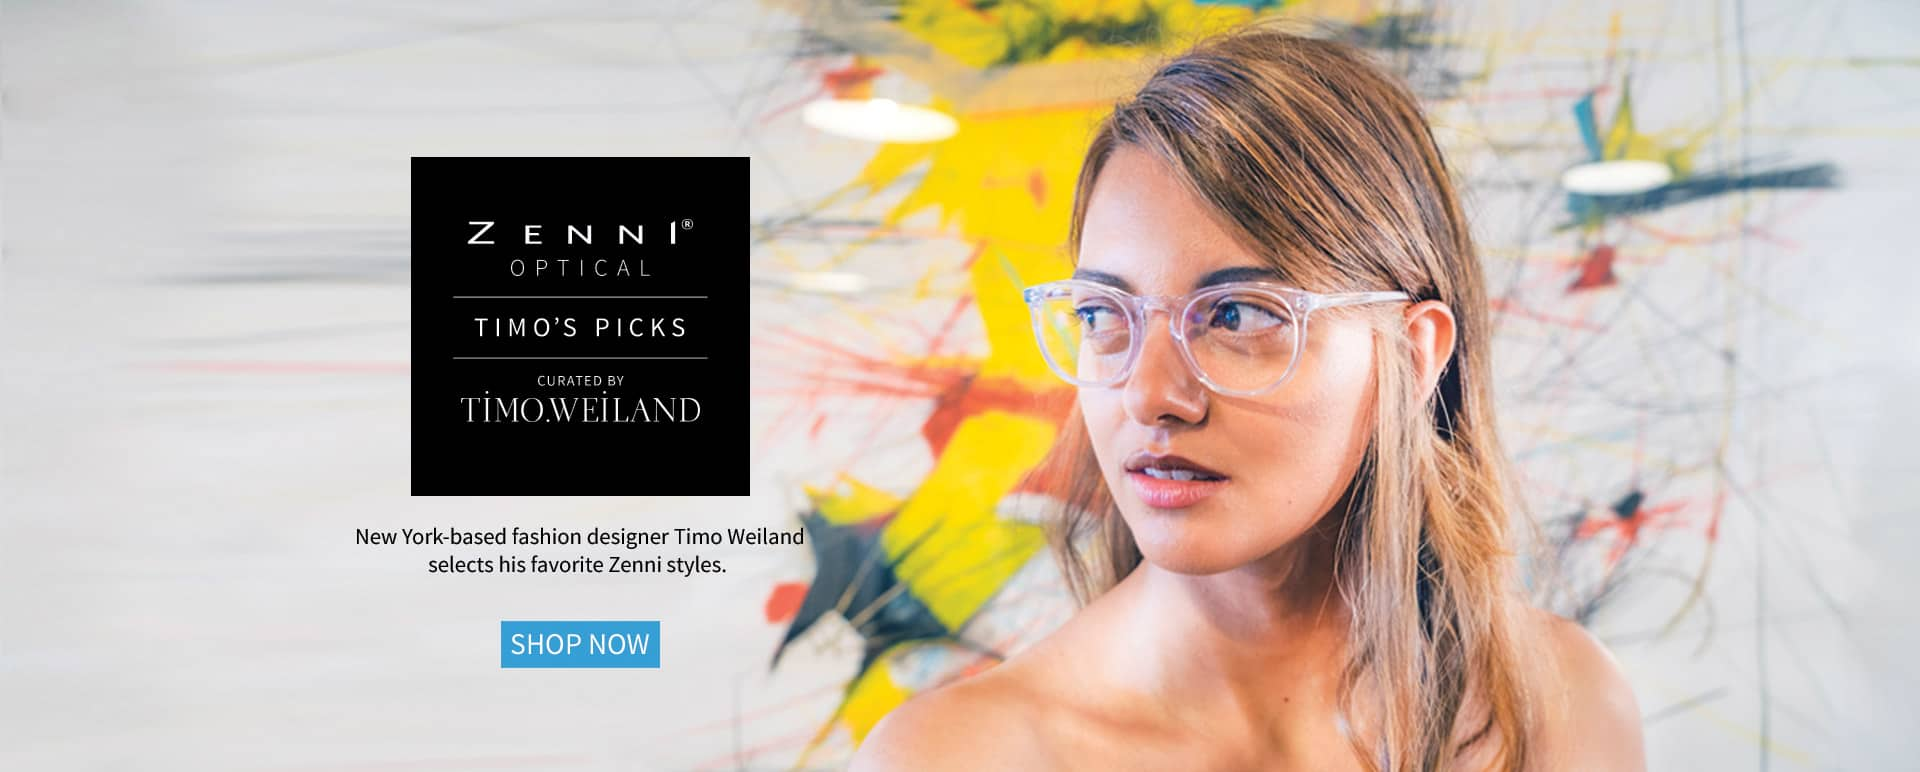 Timo's Picks | Zenni Optical